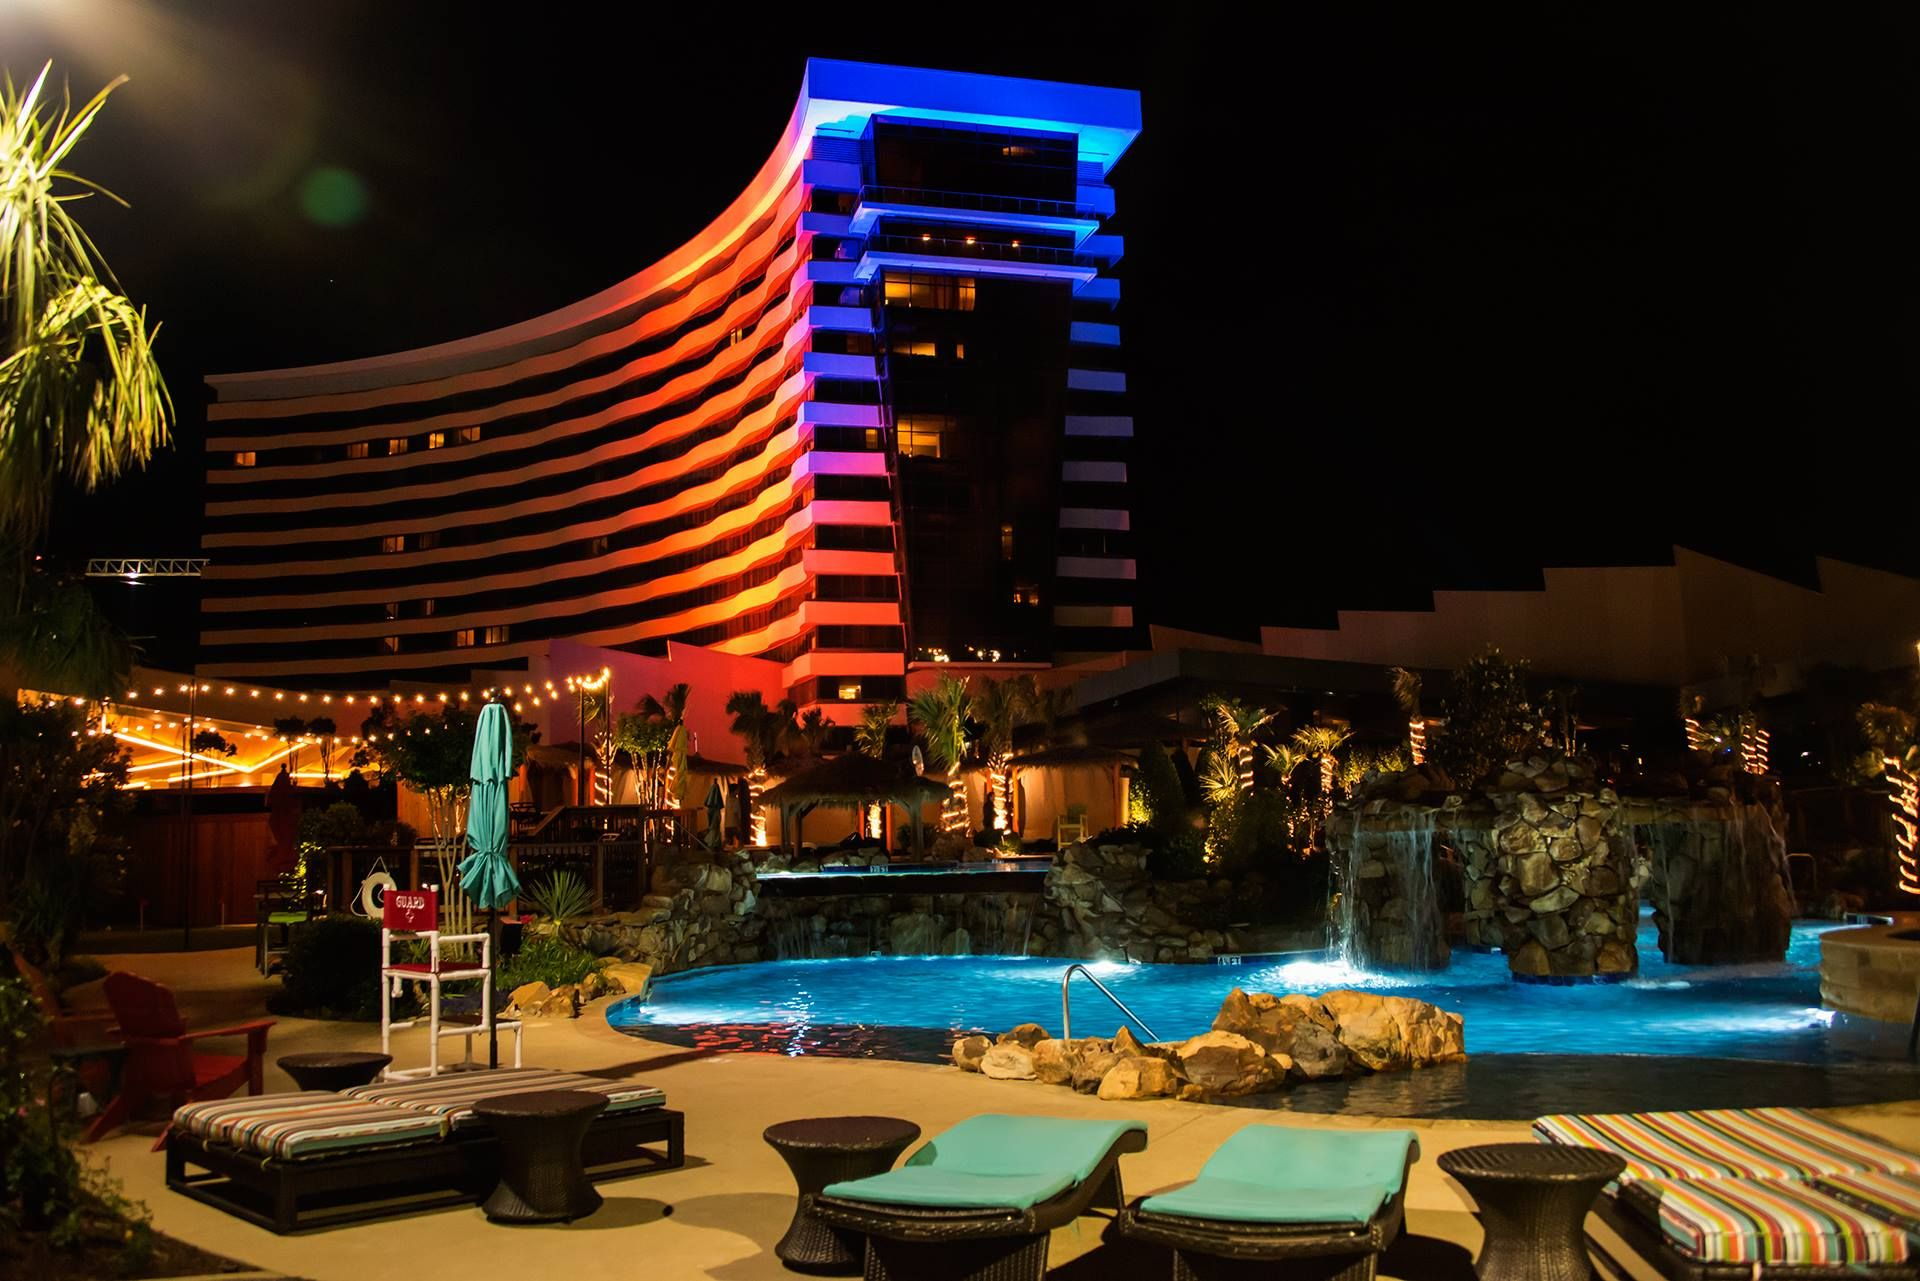 Book Your Room At The Choctaw In Durant Besides Restaurants Slot Machines Luxury Hotel Rooms And Entertainment Venue This Incredible Makes It Worth